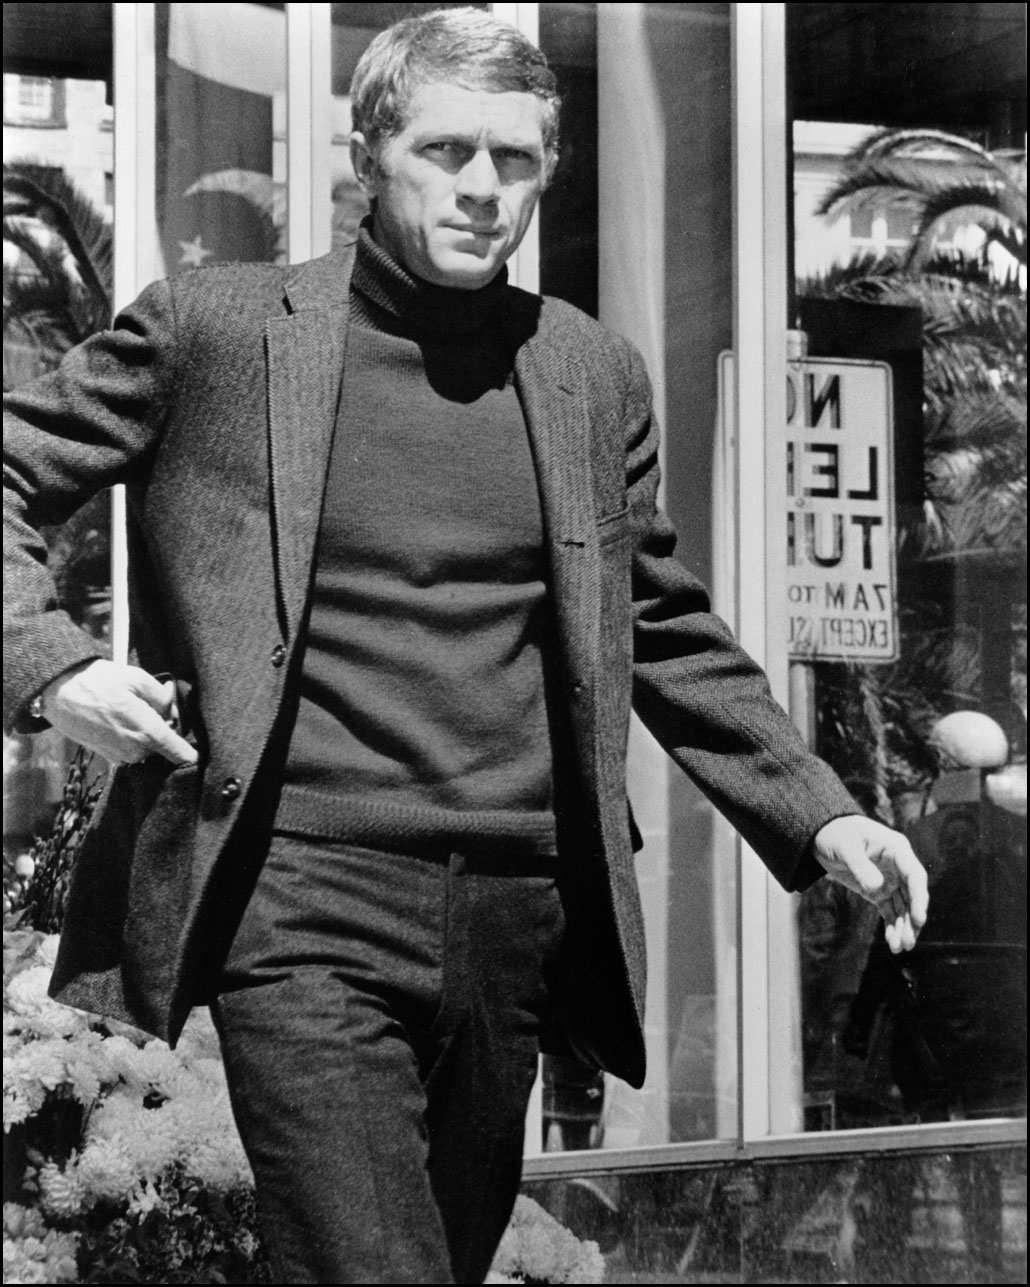 Steve McQueen movies 15 greatest films ranked worst to best